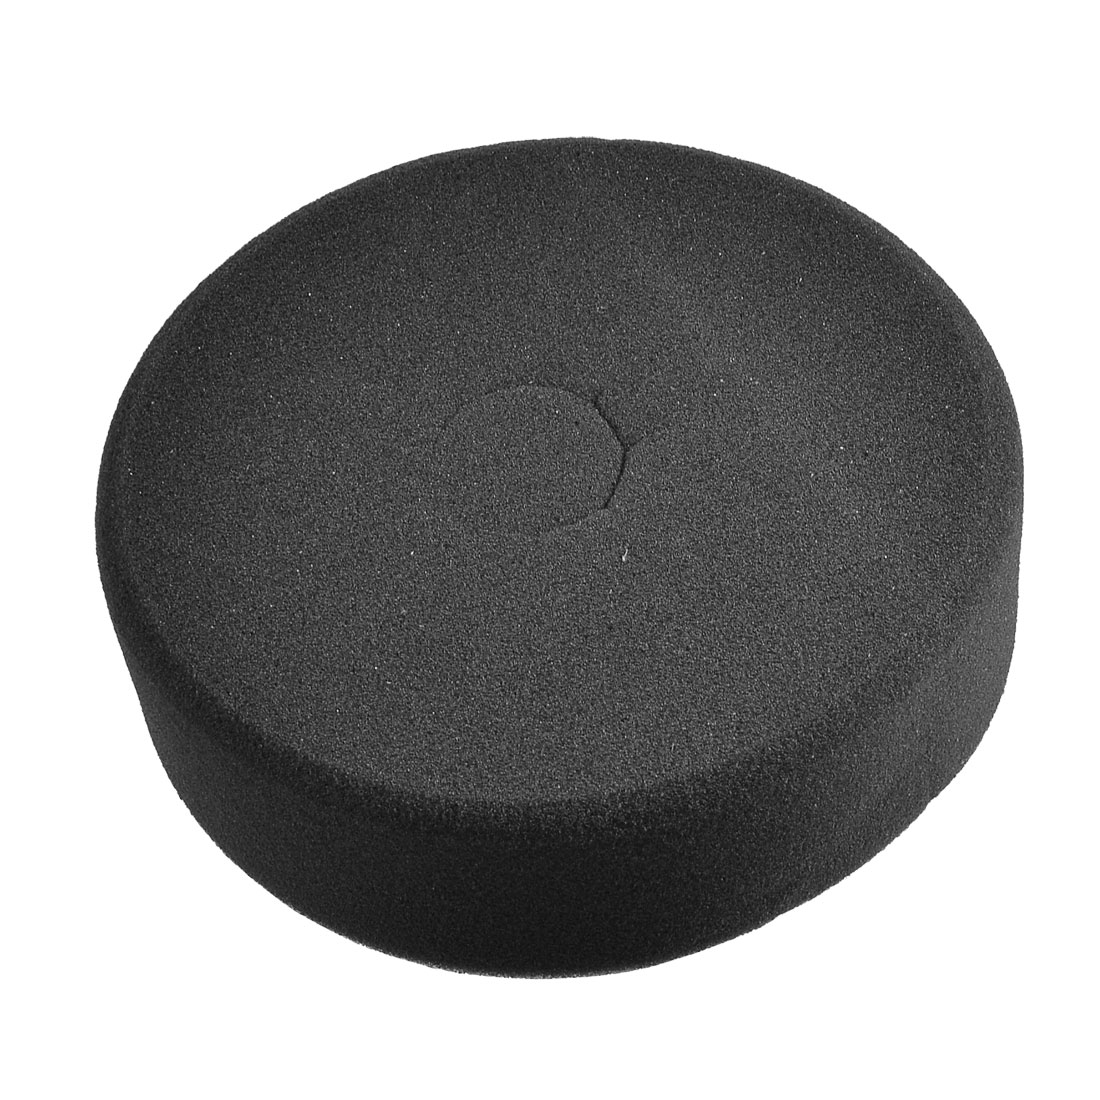 "Vehicles Car Wax Wash Black Soft Sponge Wash Cleaning Wheel 6"" Dia"